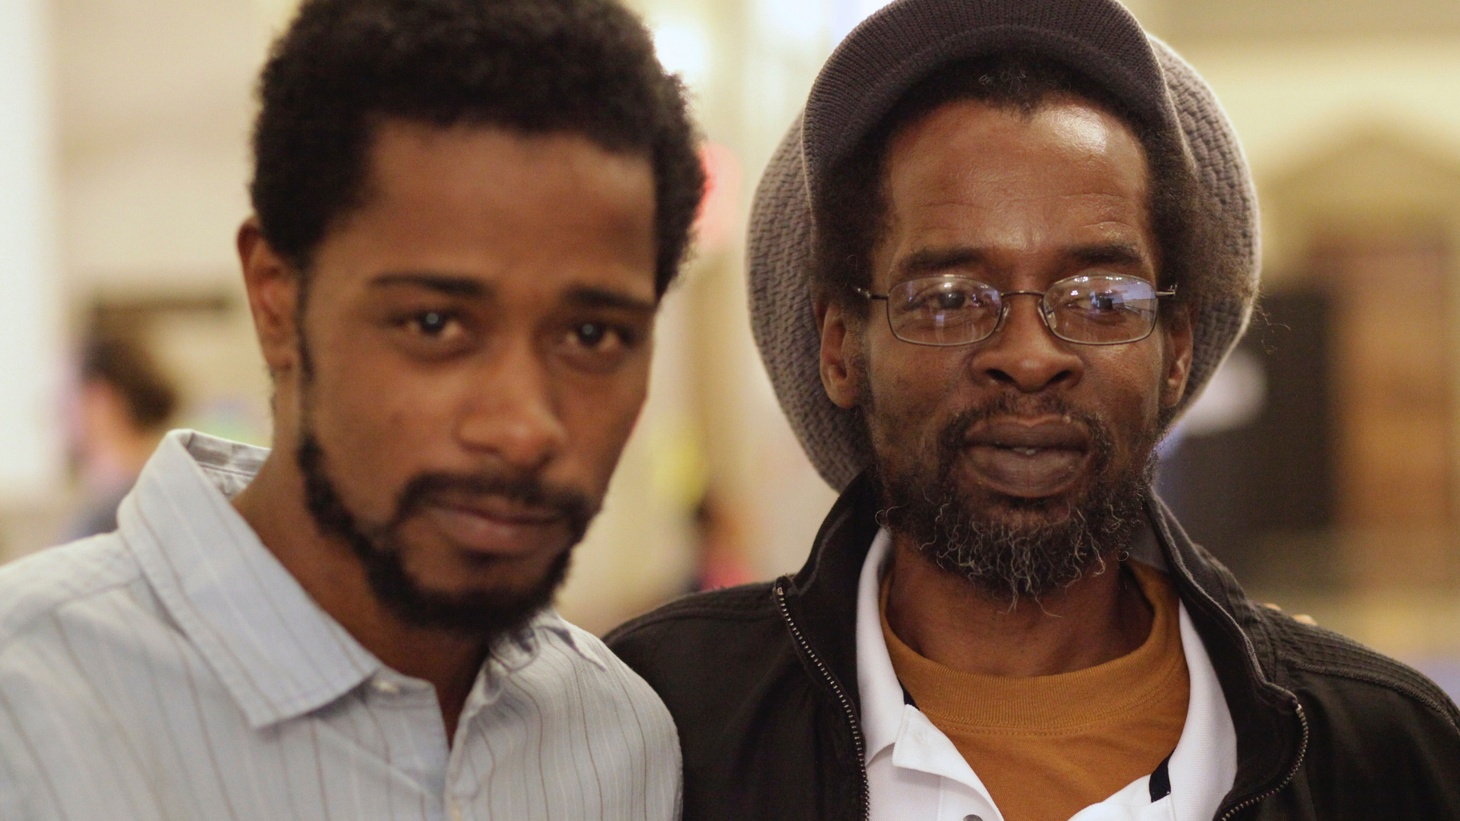 When people are freed from wrongful convictions, it's often because of DNA evidence. In the case of a Brooklyn man named Colin Warner, he was released because his best friend never gave up. For more than two decades, Carl King worked to get Colin freed.